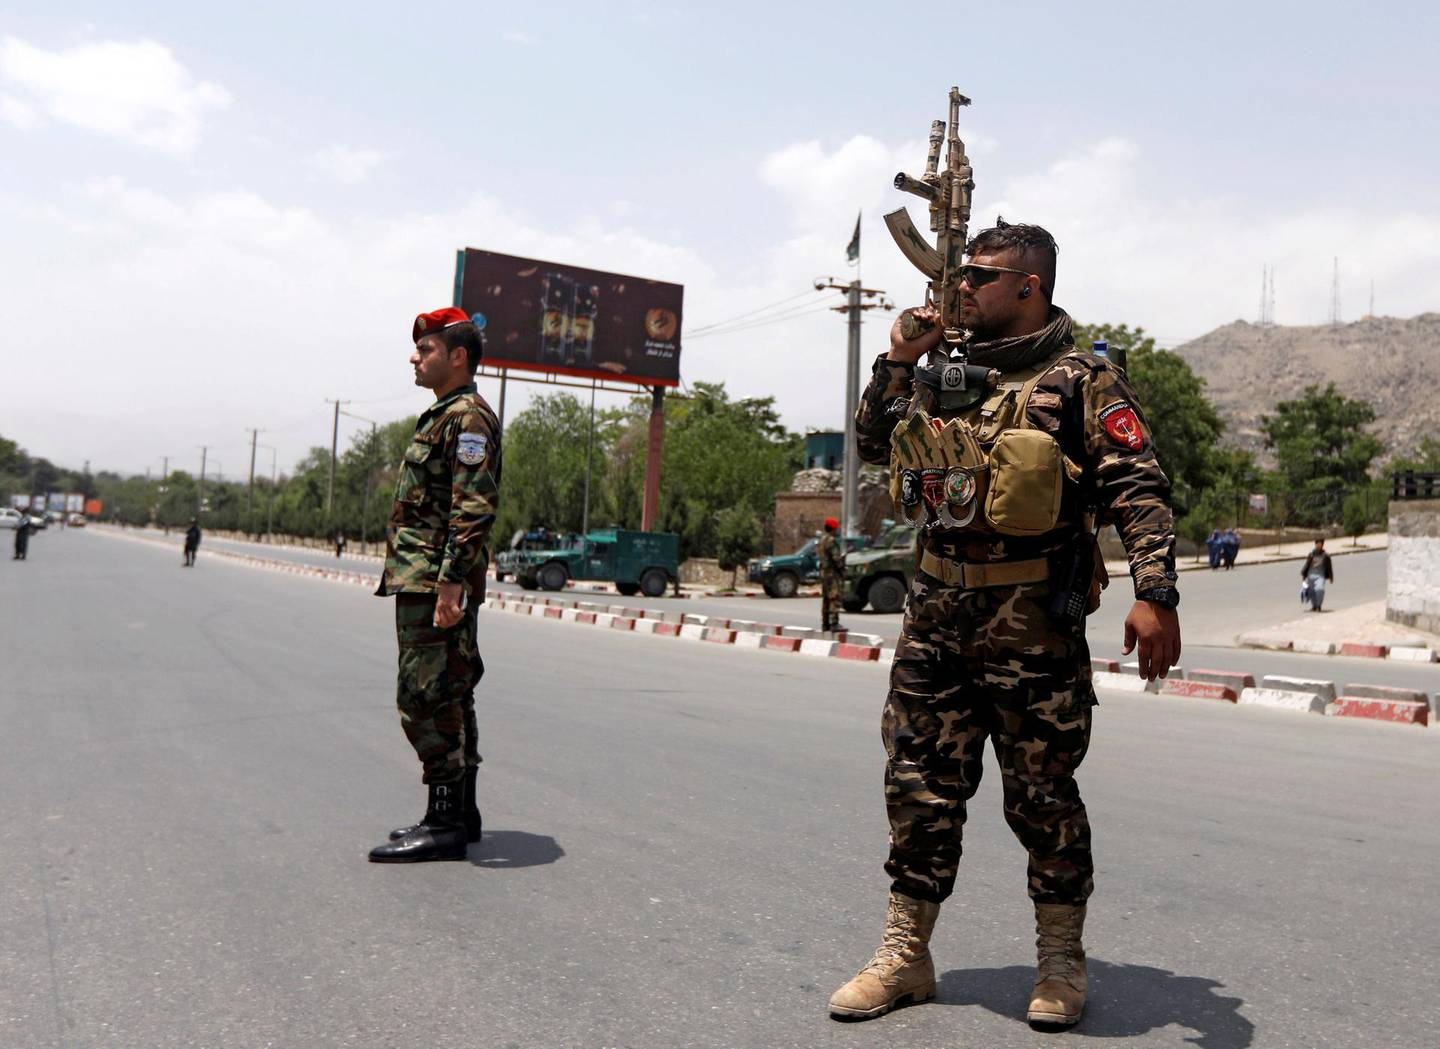 Afghan security forces keep watch at the site of a suicide attack in Kabul, Afghanistan June 4, 2018. REUTERS/Omar Sobhani